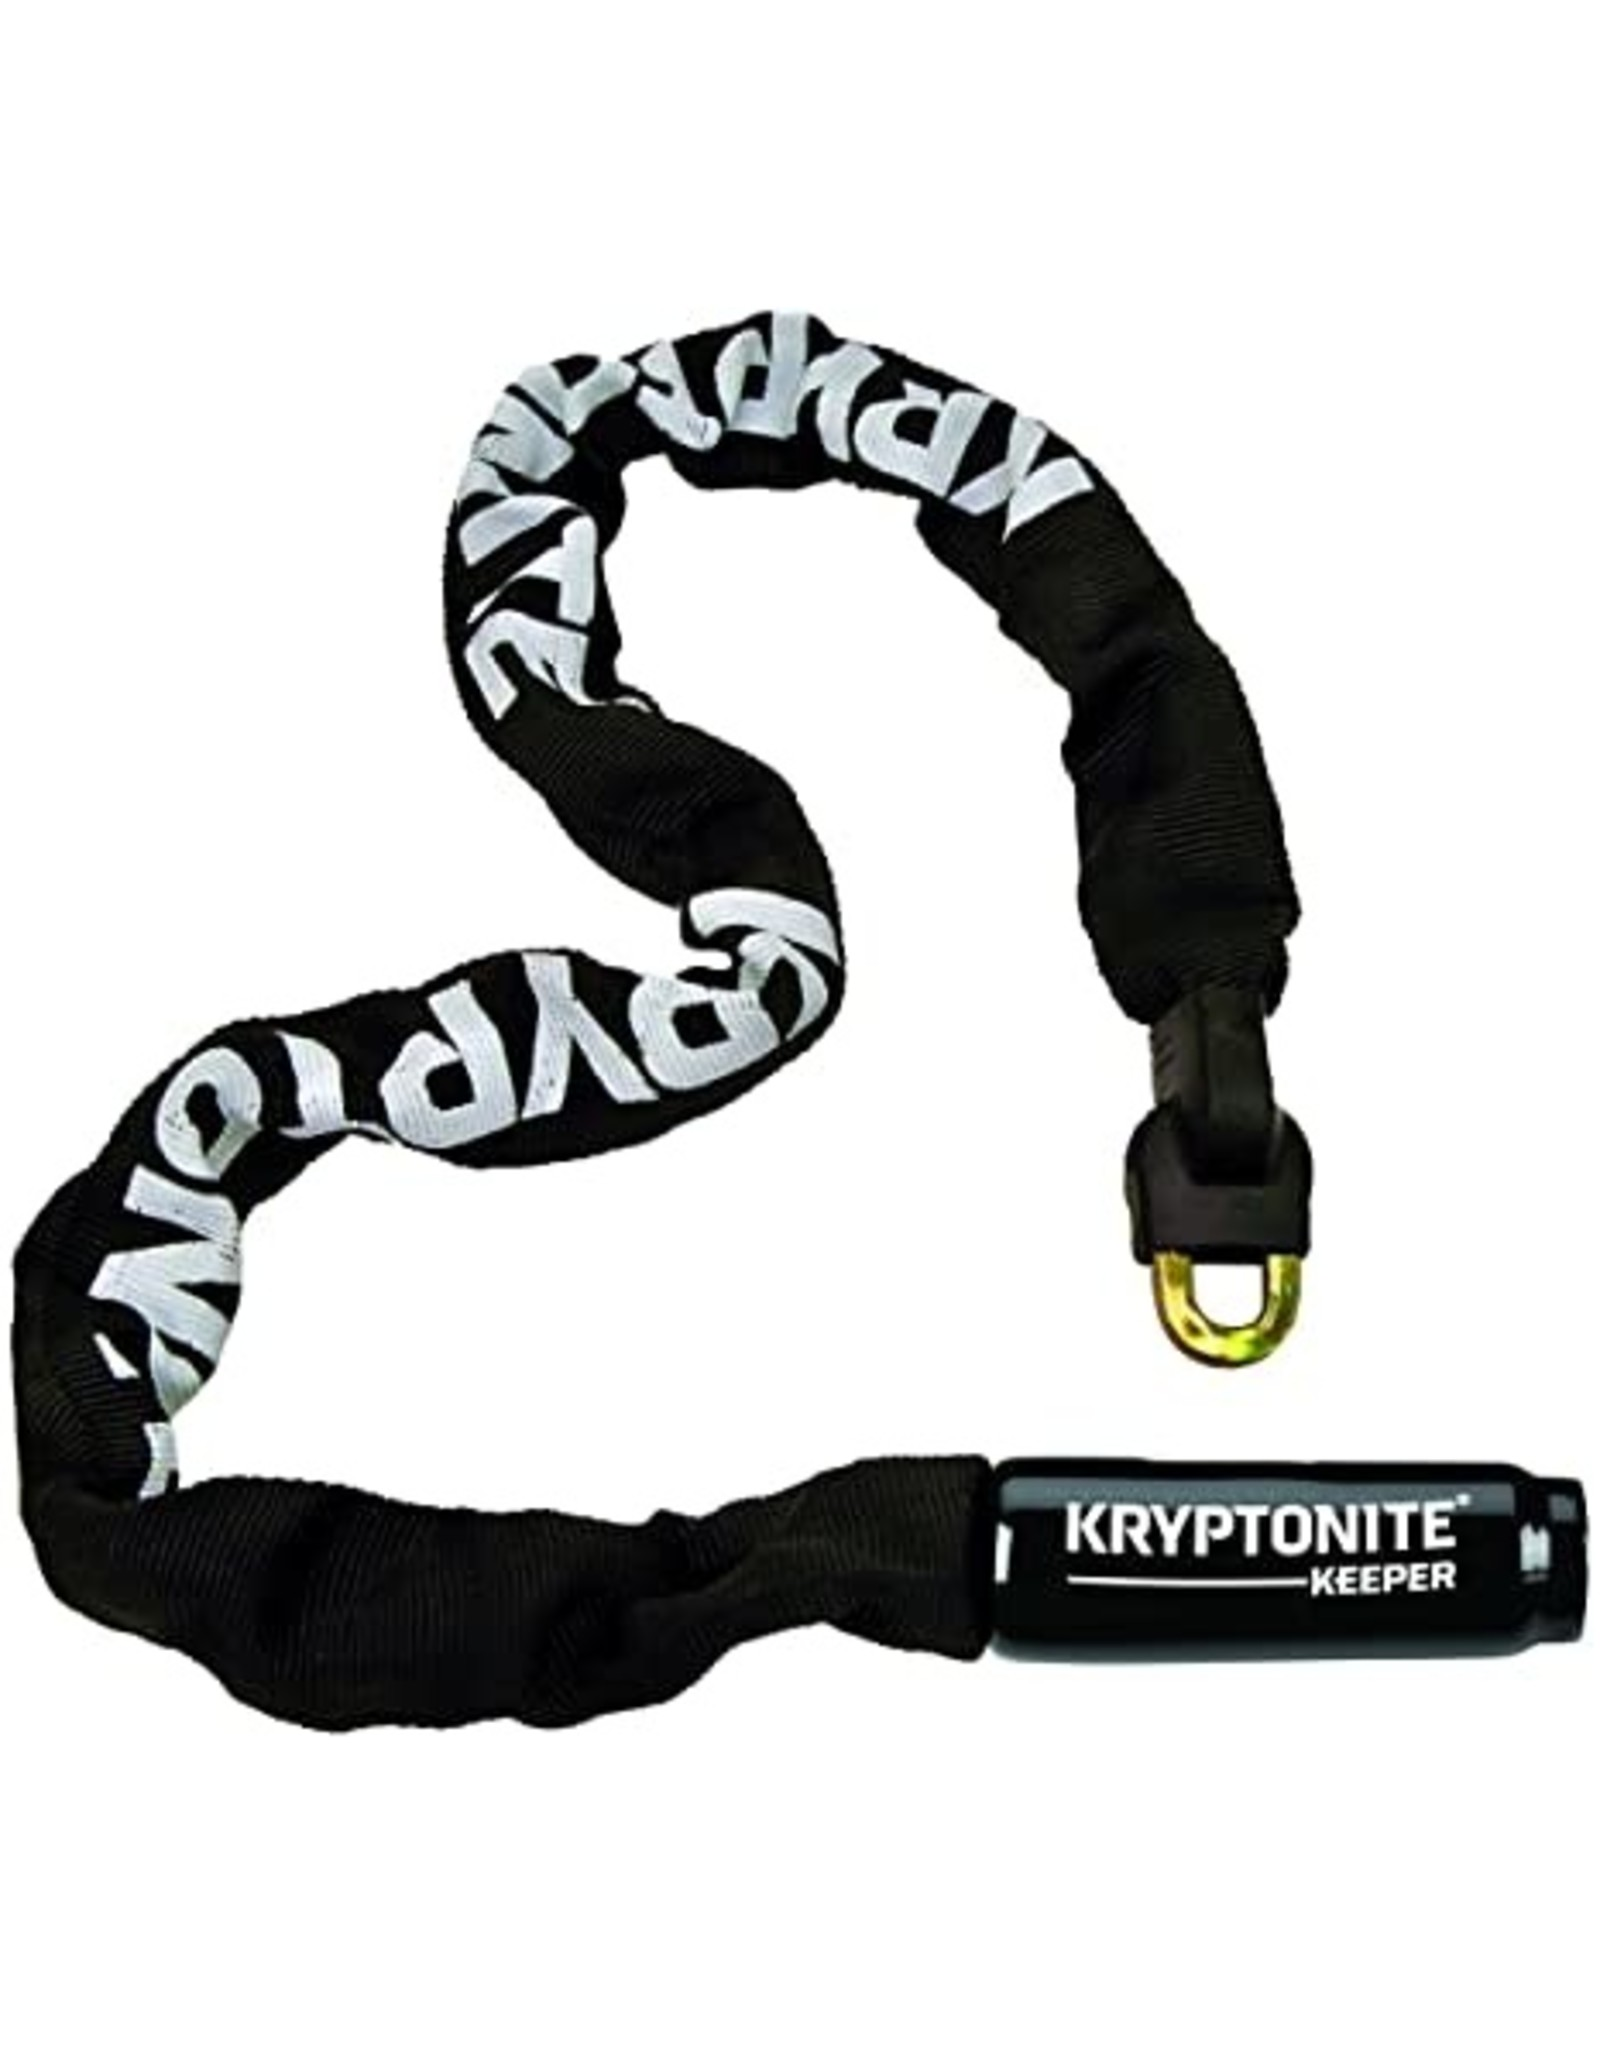 Kryptonite KEEPER 785 INTEGRATED CHAIN (BLK)